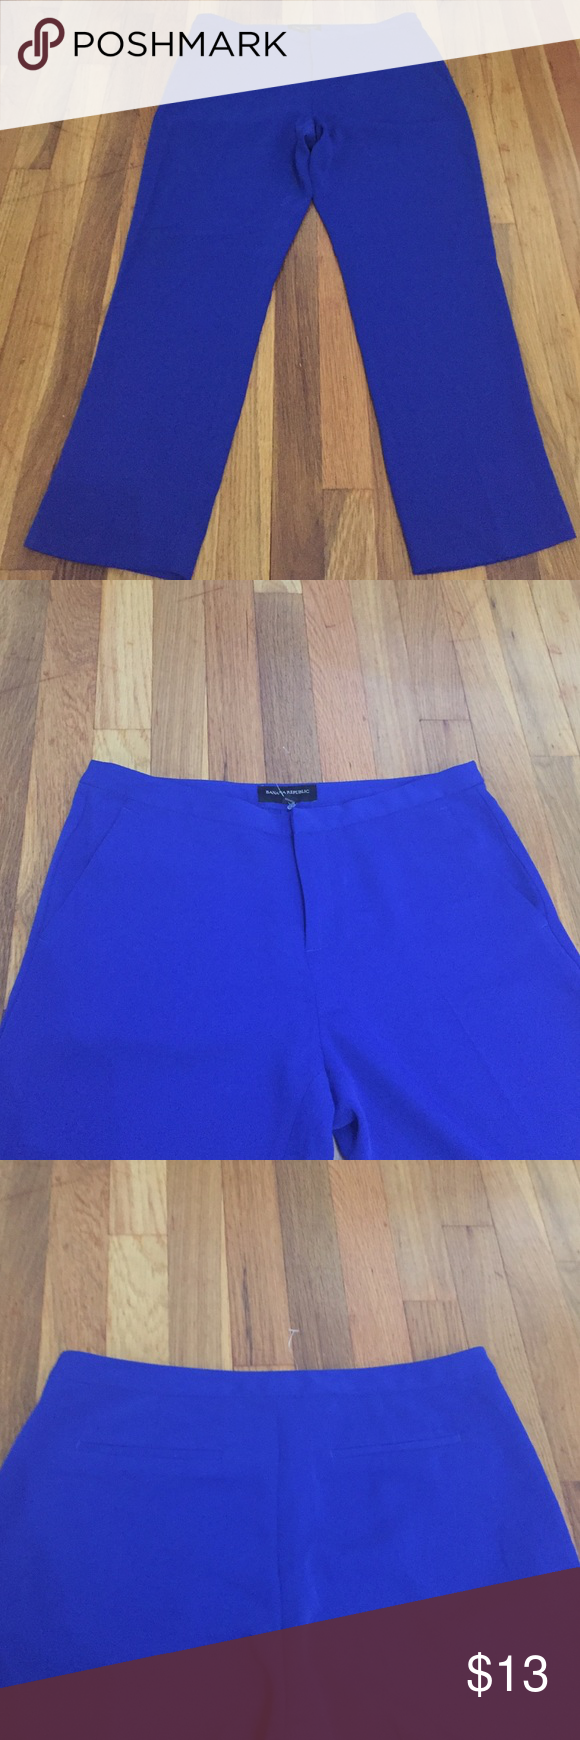 Banana republic pants Only worn once ankle cropped really light material pants look great on 2 front pockets 2 back inseam 26 Banana Republic Pants Ankle & Cropped